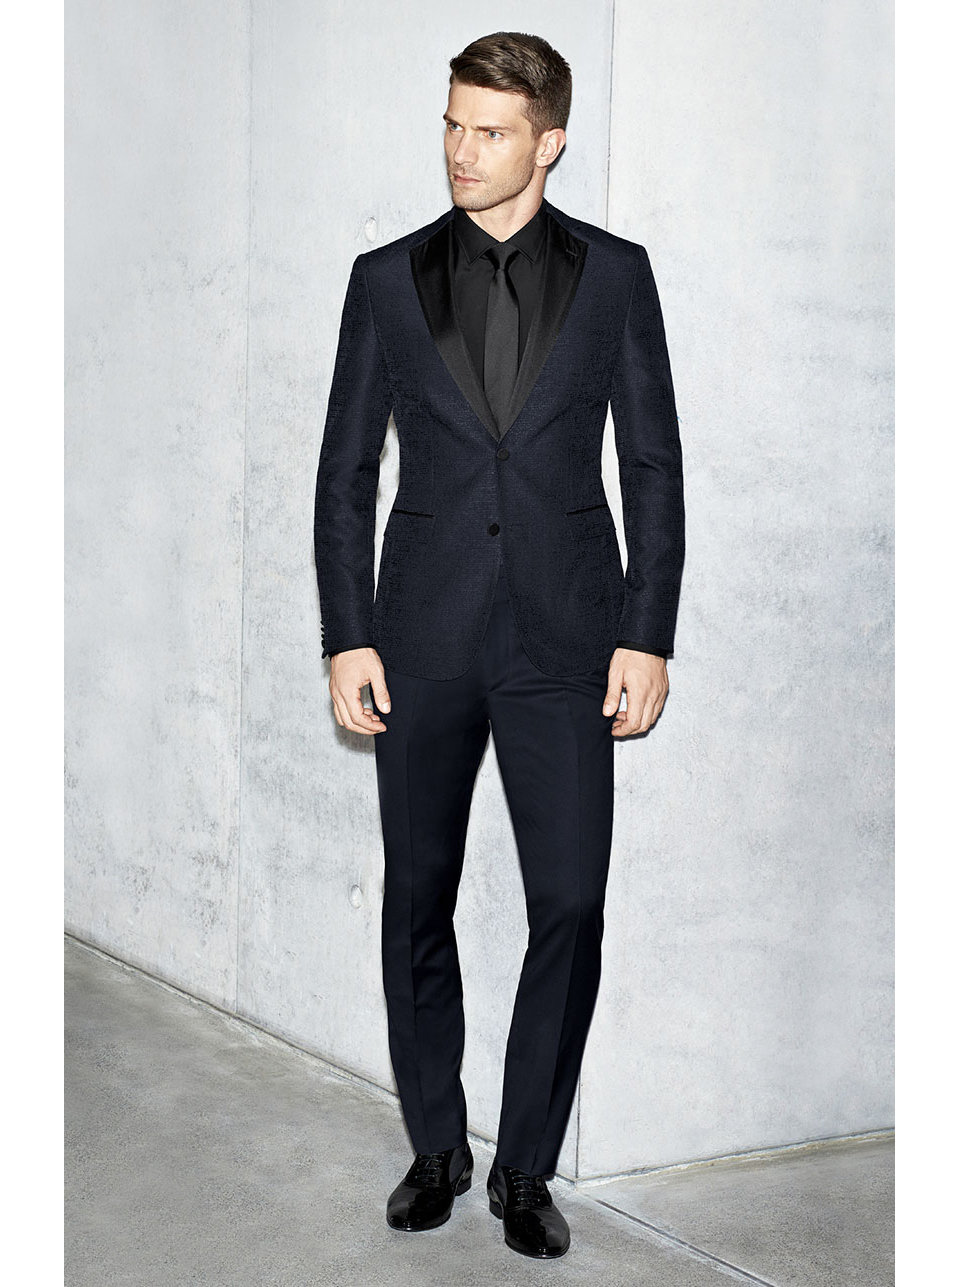 The model wears a black suit by BOSS